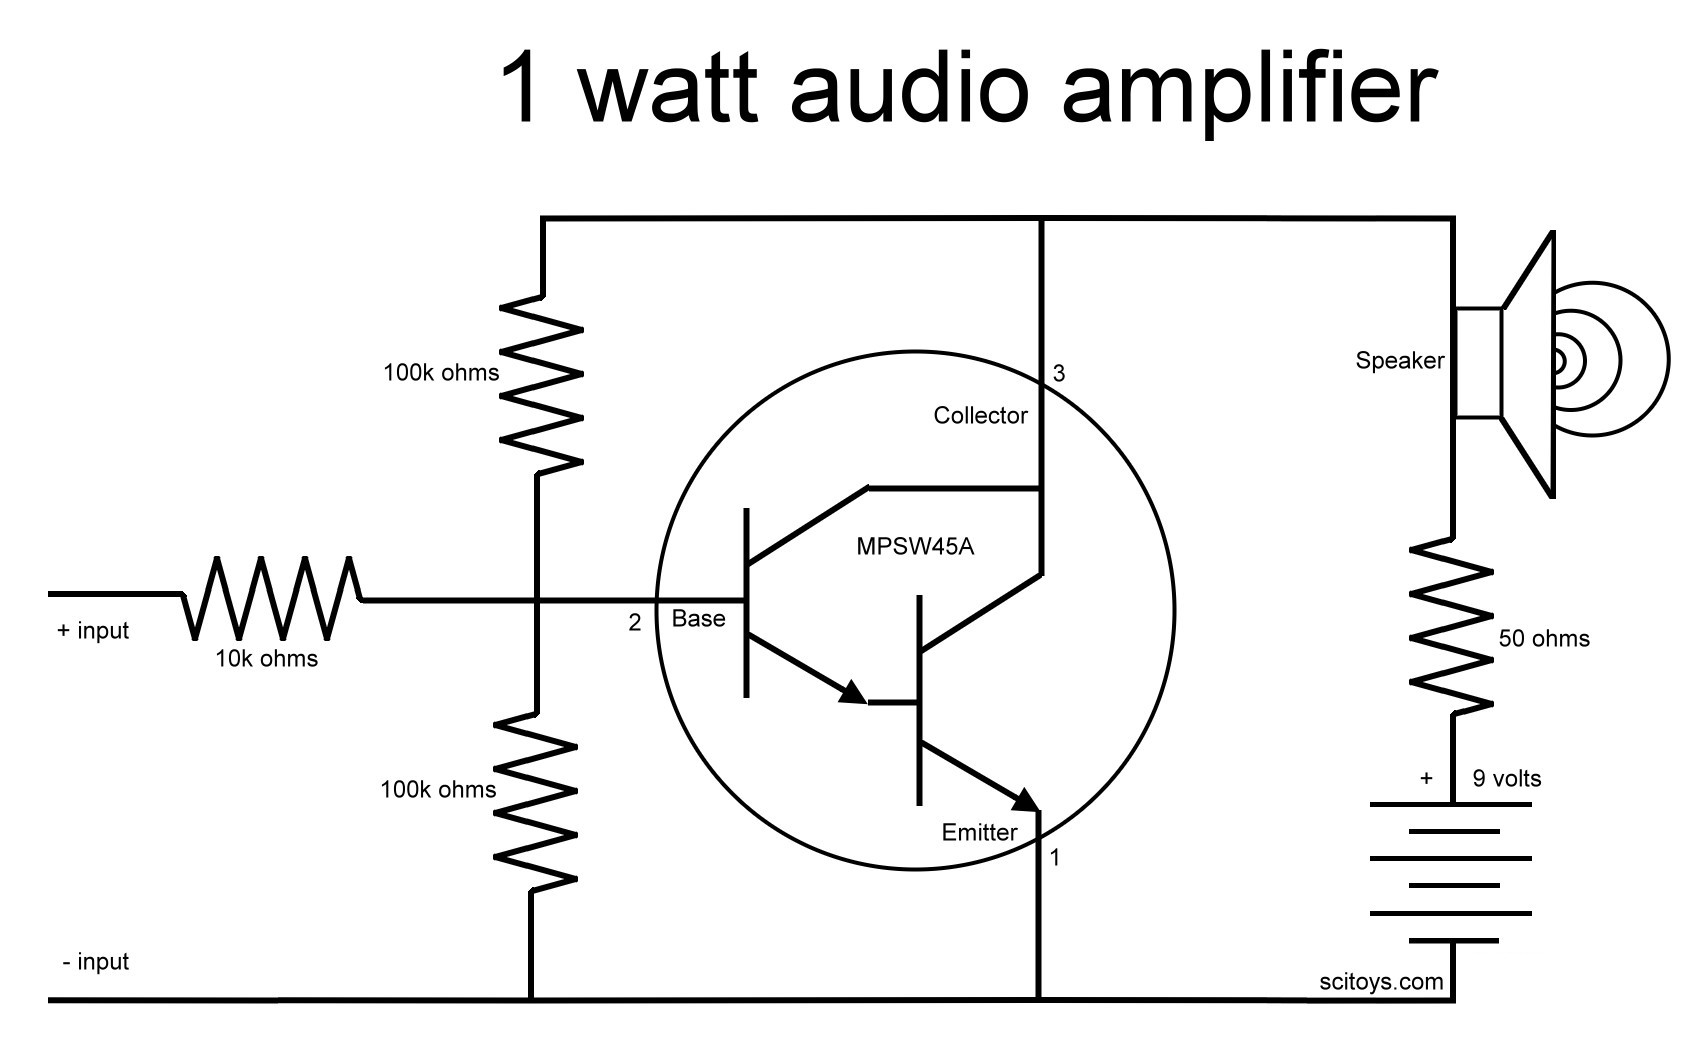 2n4401 Amp Circuit Complete Wiring Diagrams Common Emitter Amplifier Electronics Chapter 10 Computers And Build A Simple 1 Watt Audio Rh Sci Toys Com